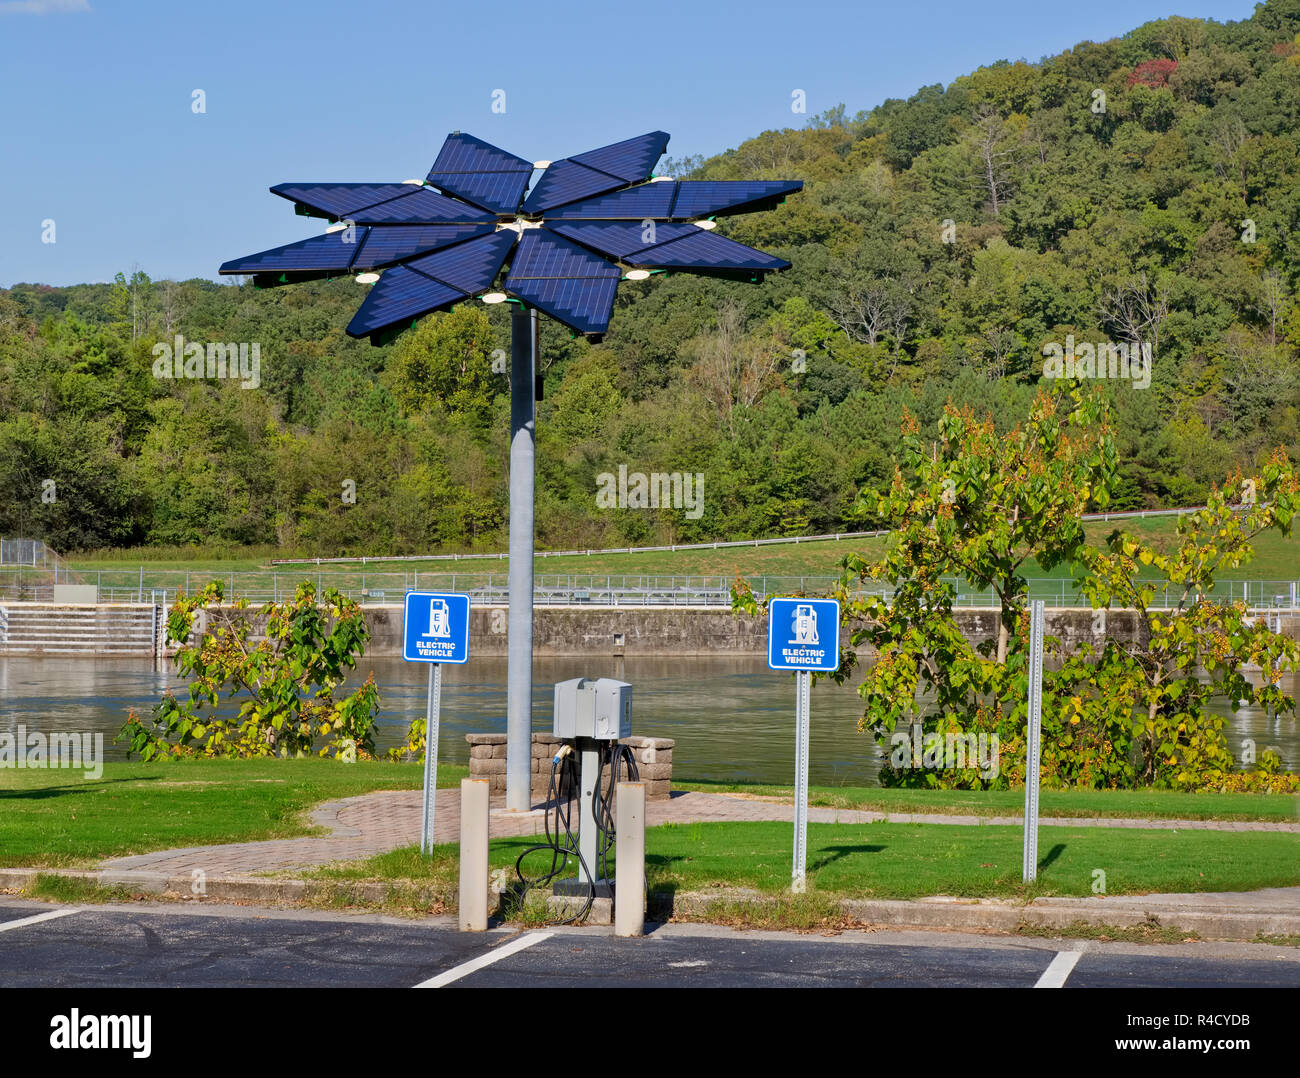 Solar Array, identified as a 'Solar Photovoltaic Flair', Electric Vehicle Charge Station,  Melton Hill Recreation Area. - Stock Image